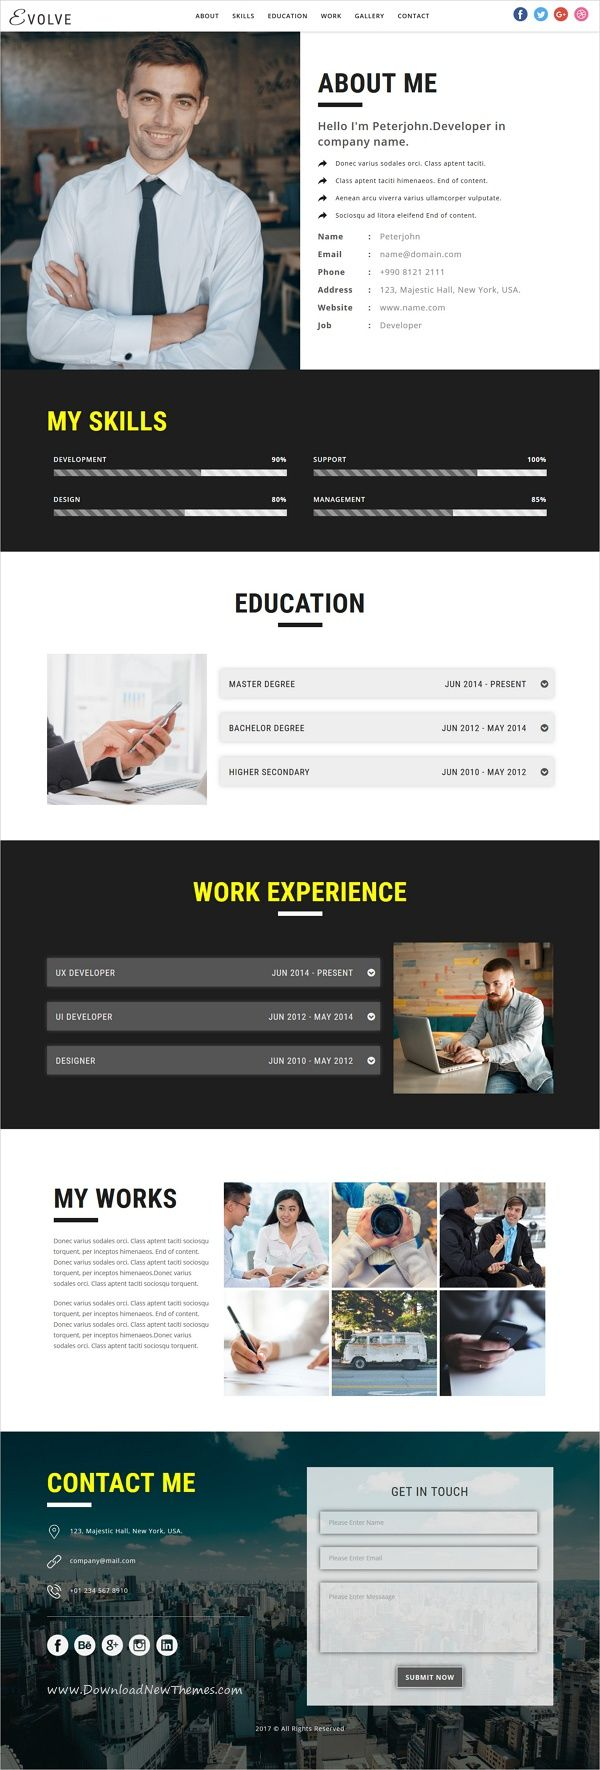 EVOLVE - Multipurpose Responsive HTML Landing Pages   Template